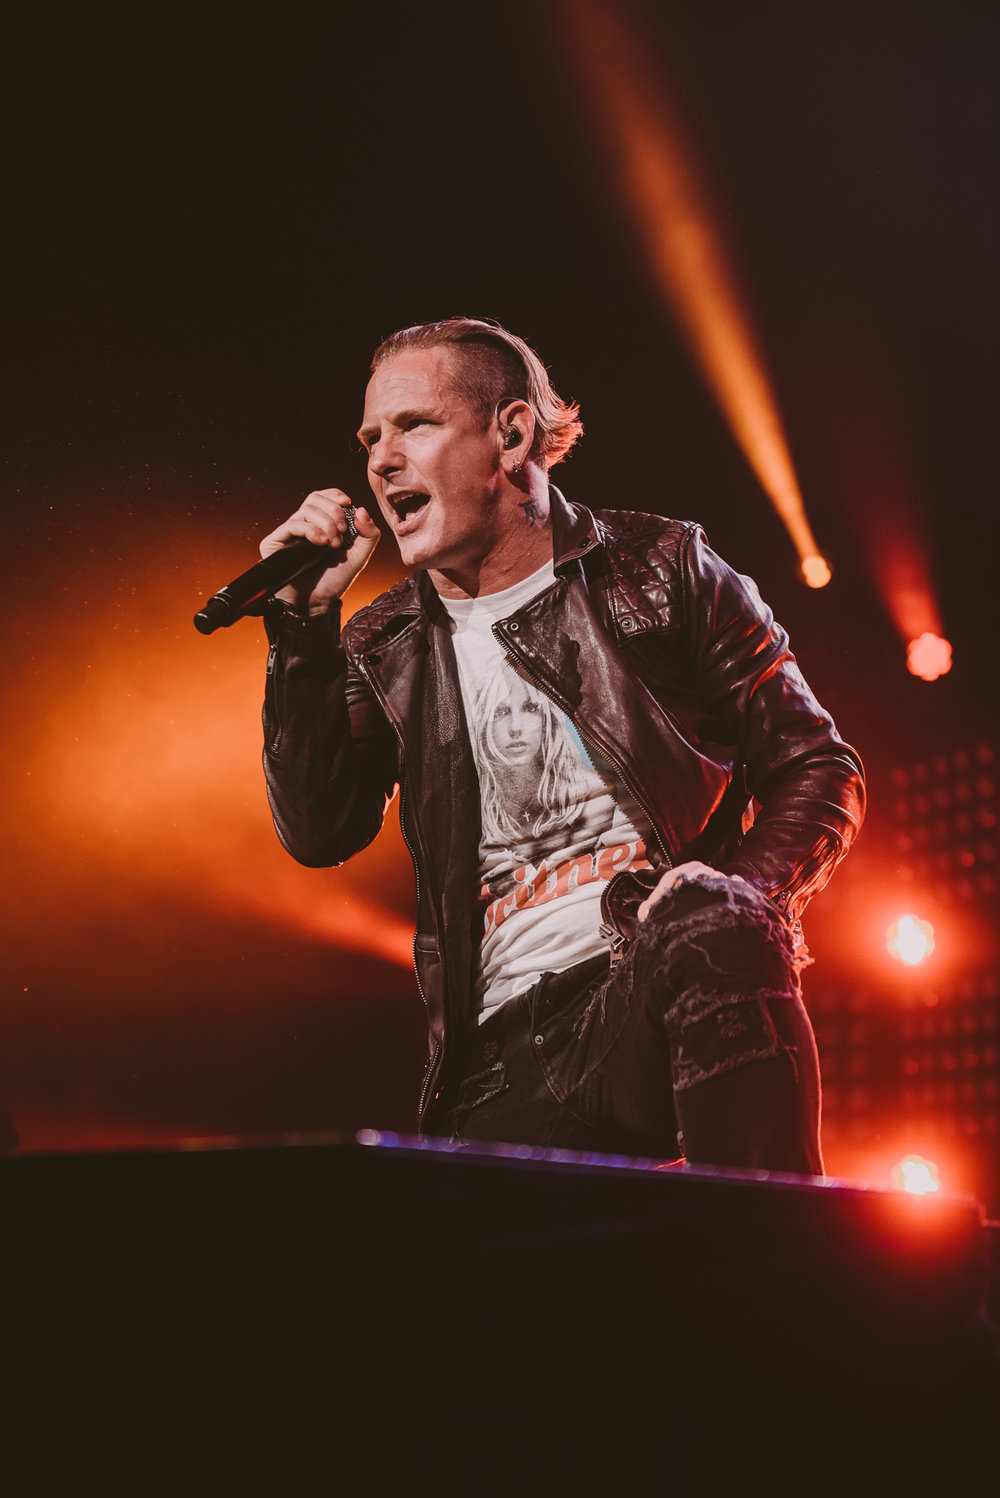 1_Stone_Sour-Abbotsford_Centre-Timothy_Nguyen-20180127 (3 of 16).jpg